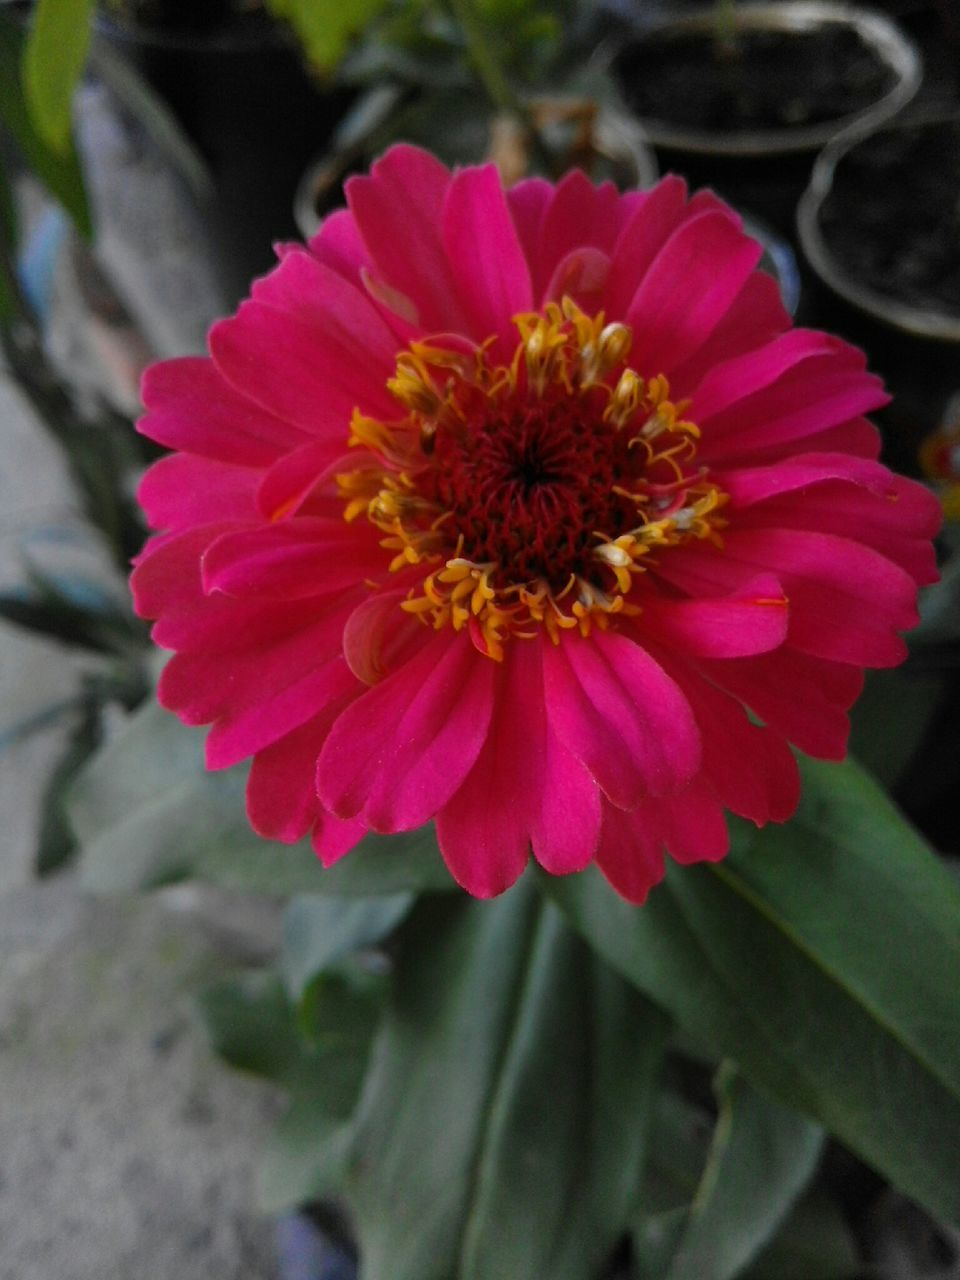 flower, petal, beauty in nature, nature, flower head, fragility, growth, plant, freshness, no people, close-up, blooming, outdoors, day